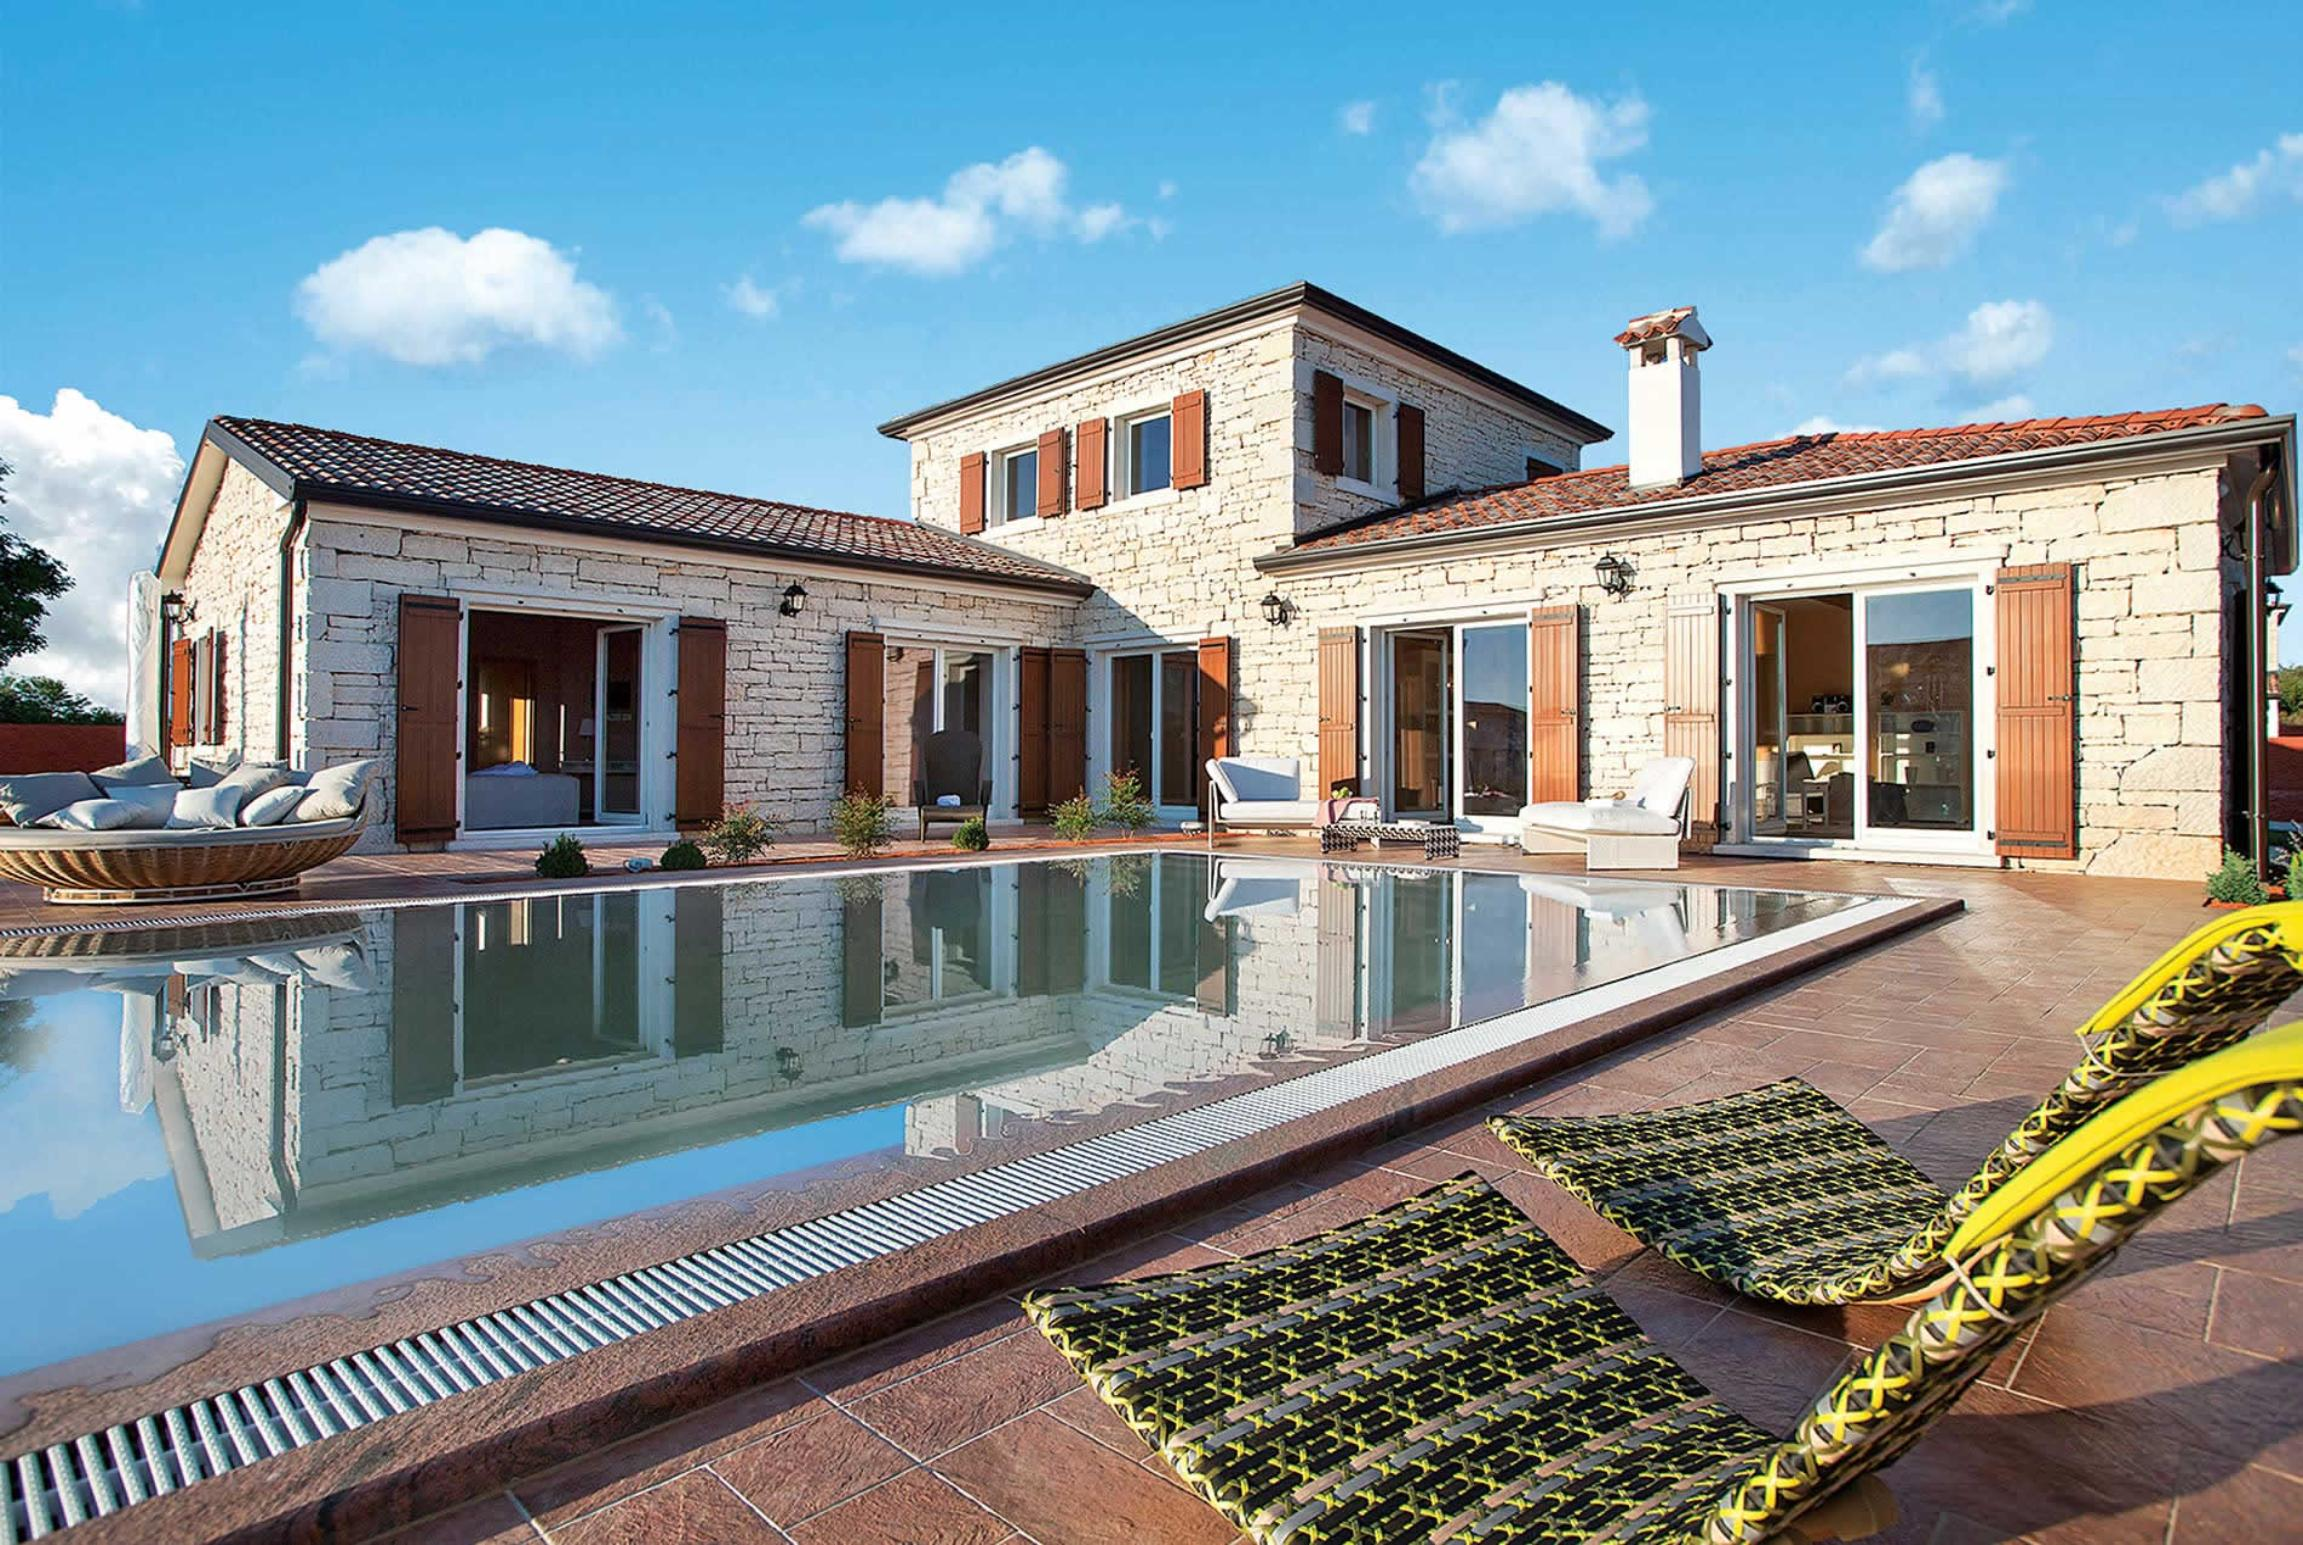 Read more about Modena villa